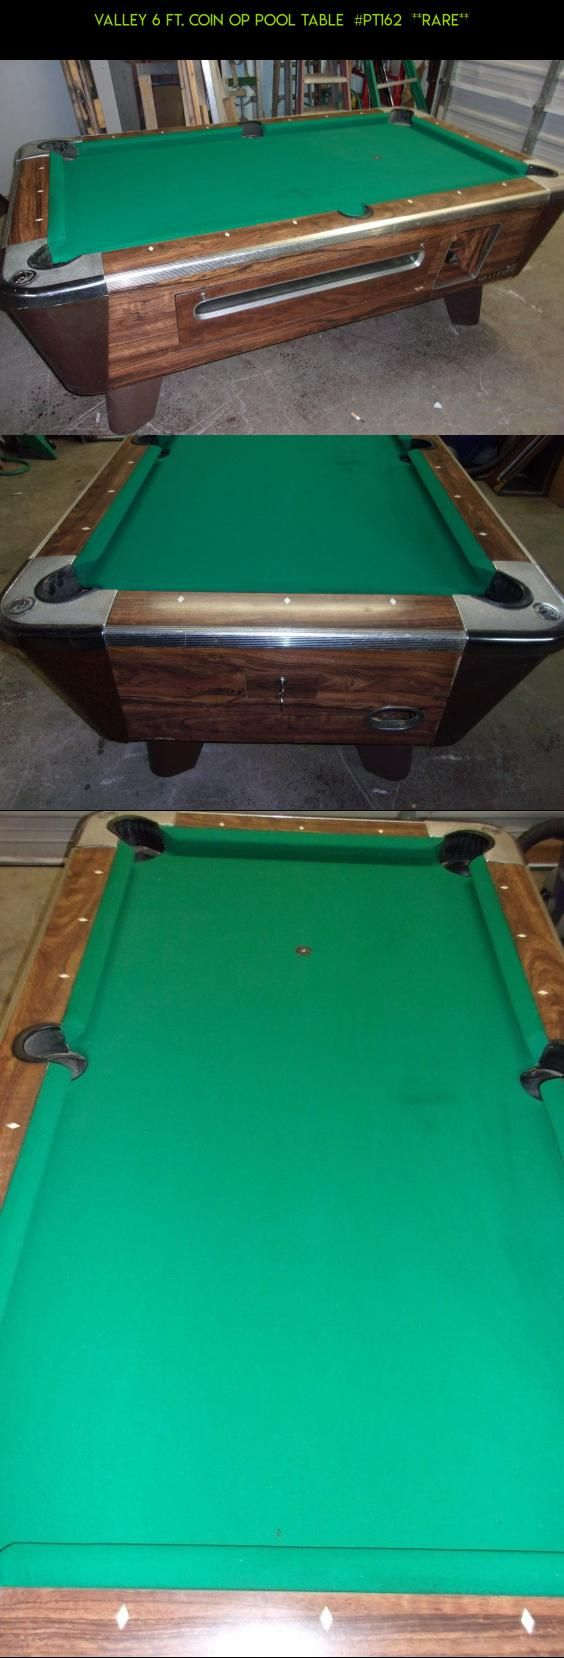 Valley 6 ft. coin op pool table  #PT162  **RARE** #parts #drone #shopping #technology #products #camera #gadgets #kit #pools #racing #plans #6ft #fpv #tech